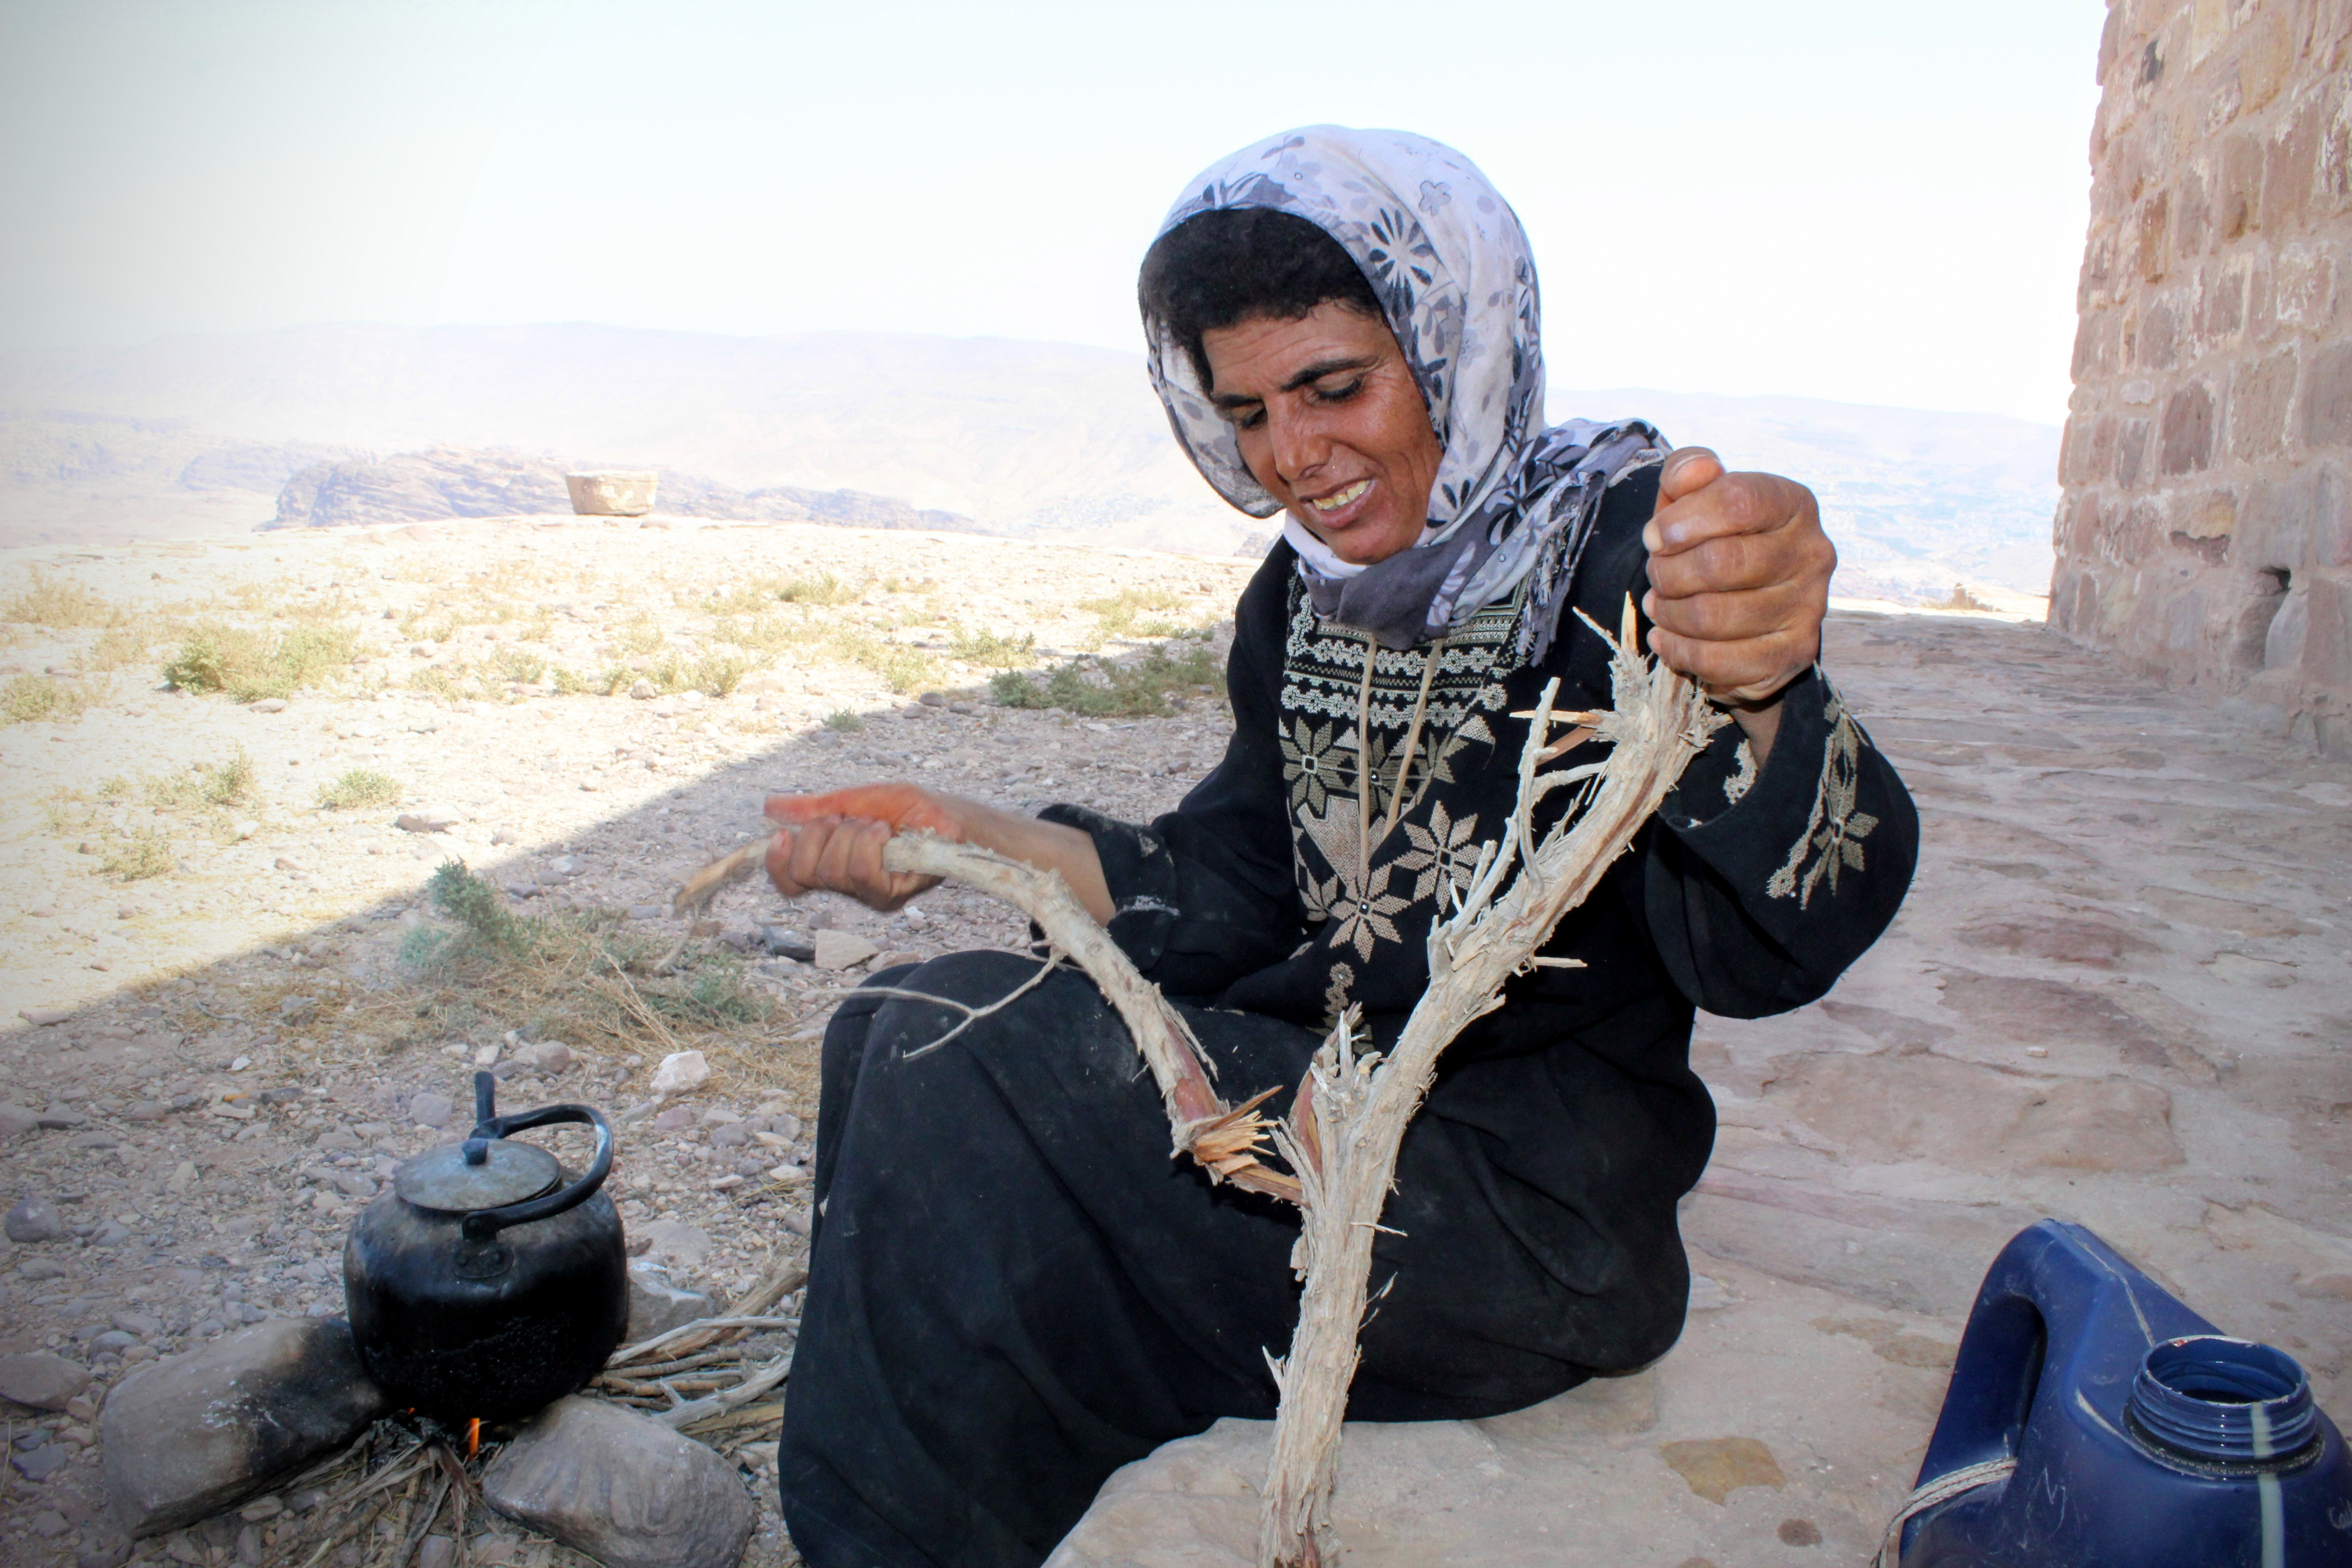 Bedouin woman holding wood